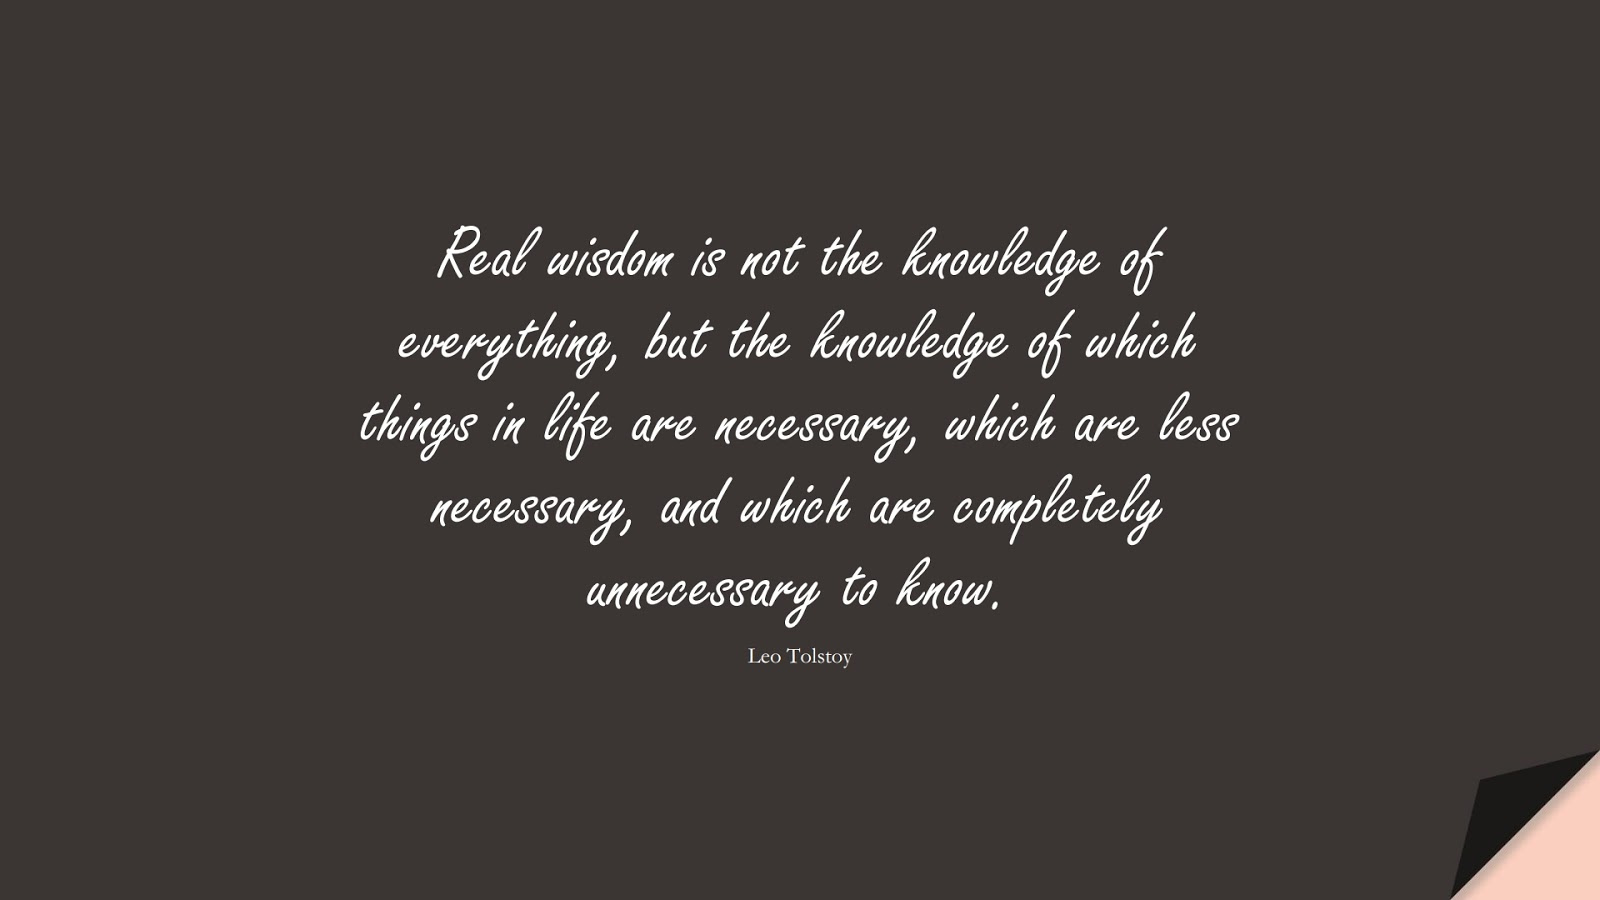 Real wisdom is not the knowledge of everything, but the knowledge of which things in life are necessary, which are less necessary, and which are completely unnecessary to know. (Leo Tolstoy);  #WordsofWisdom